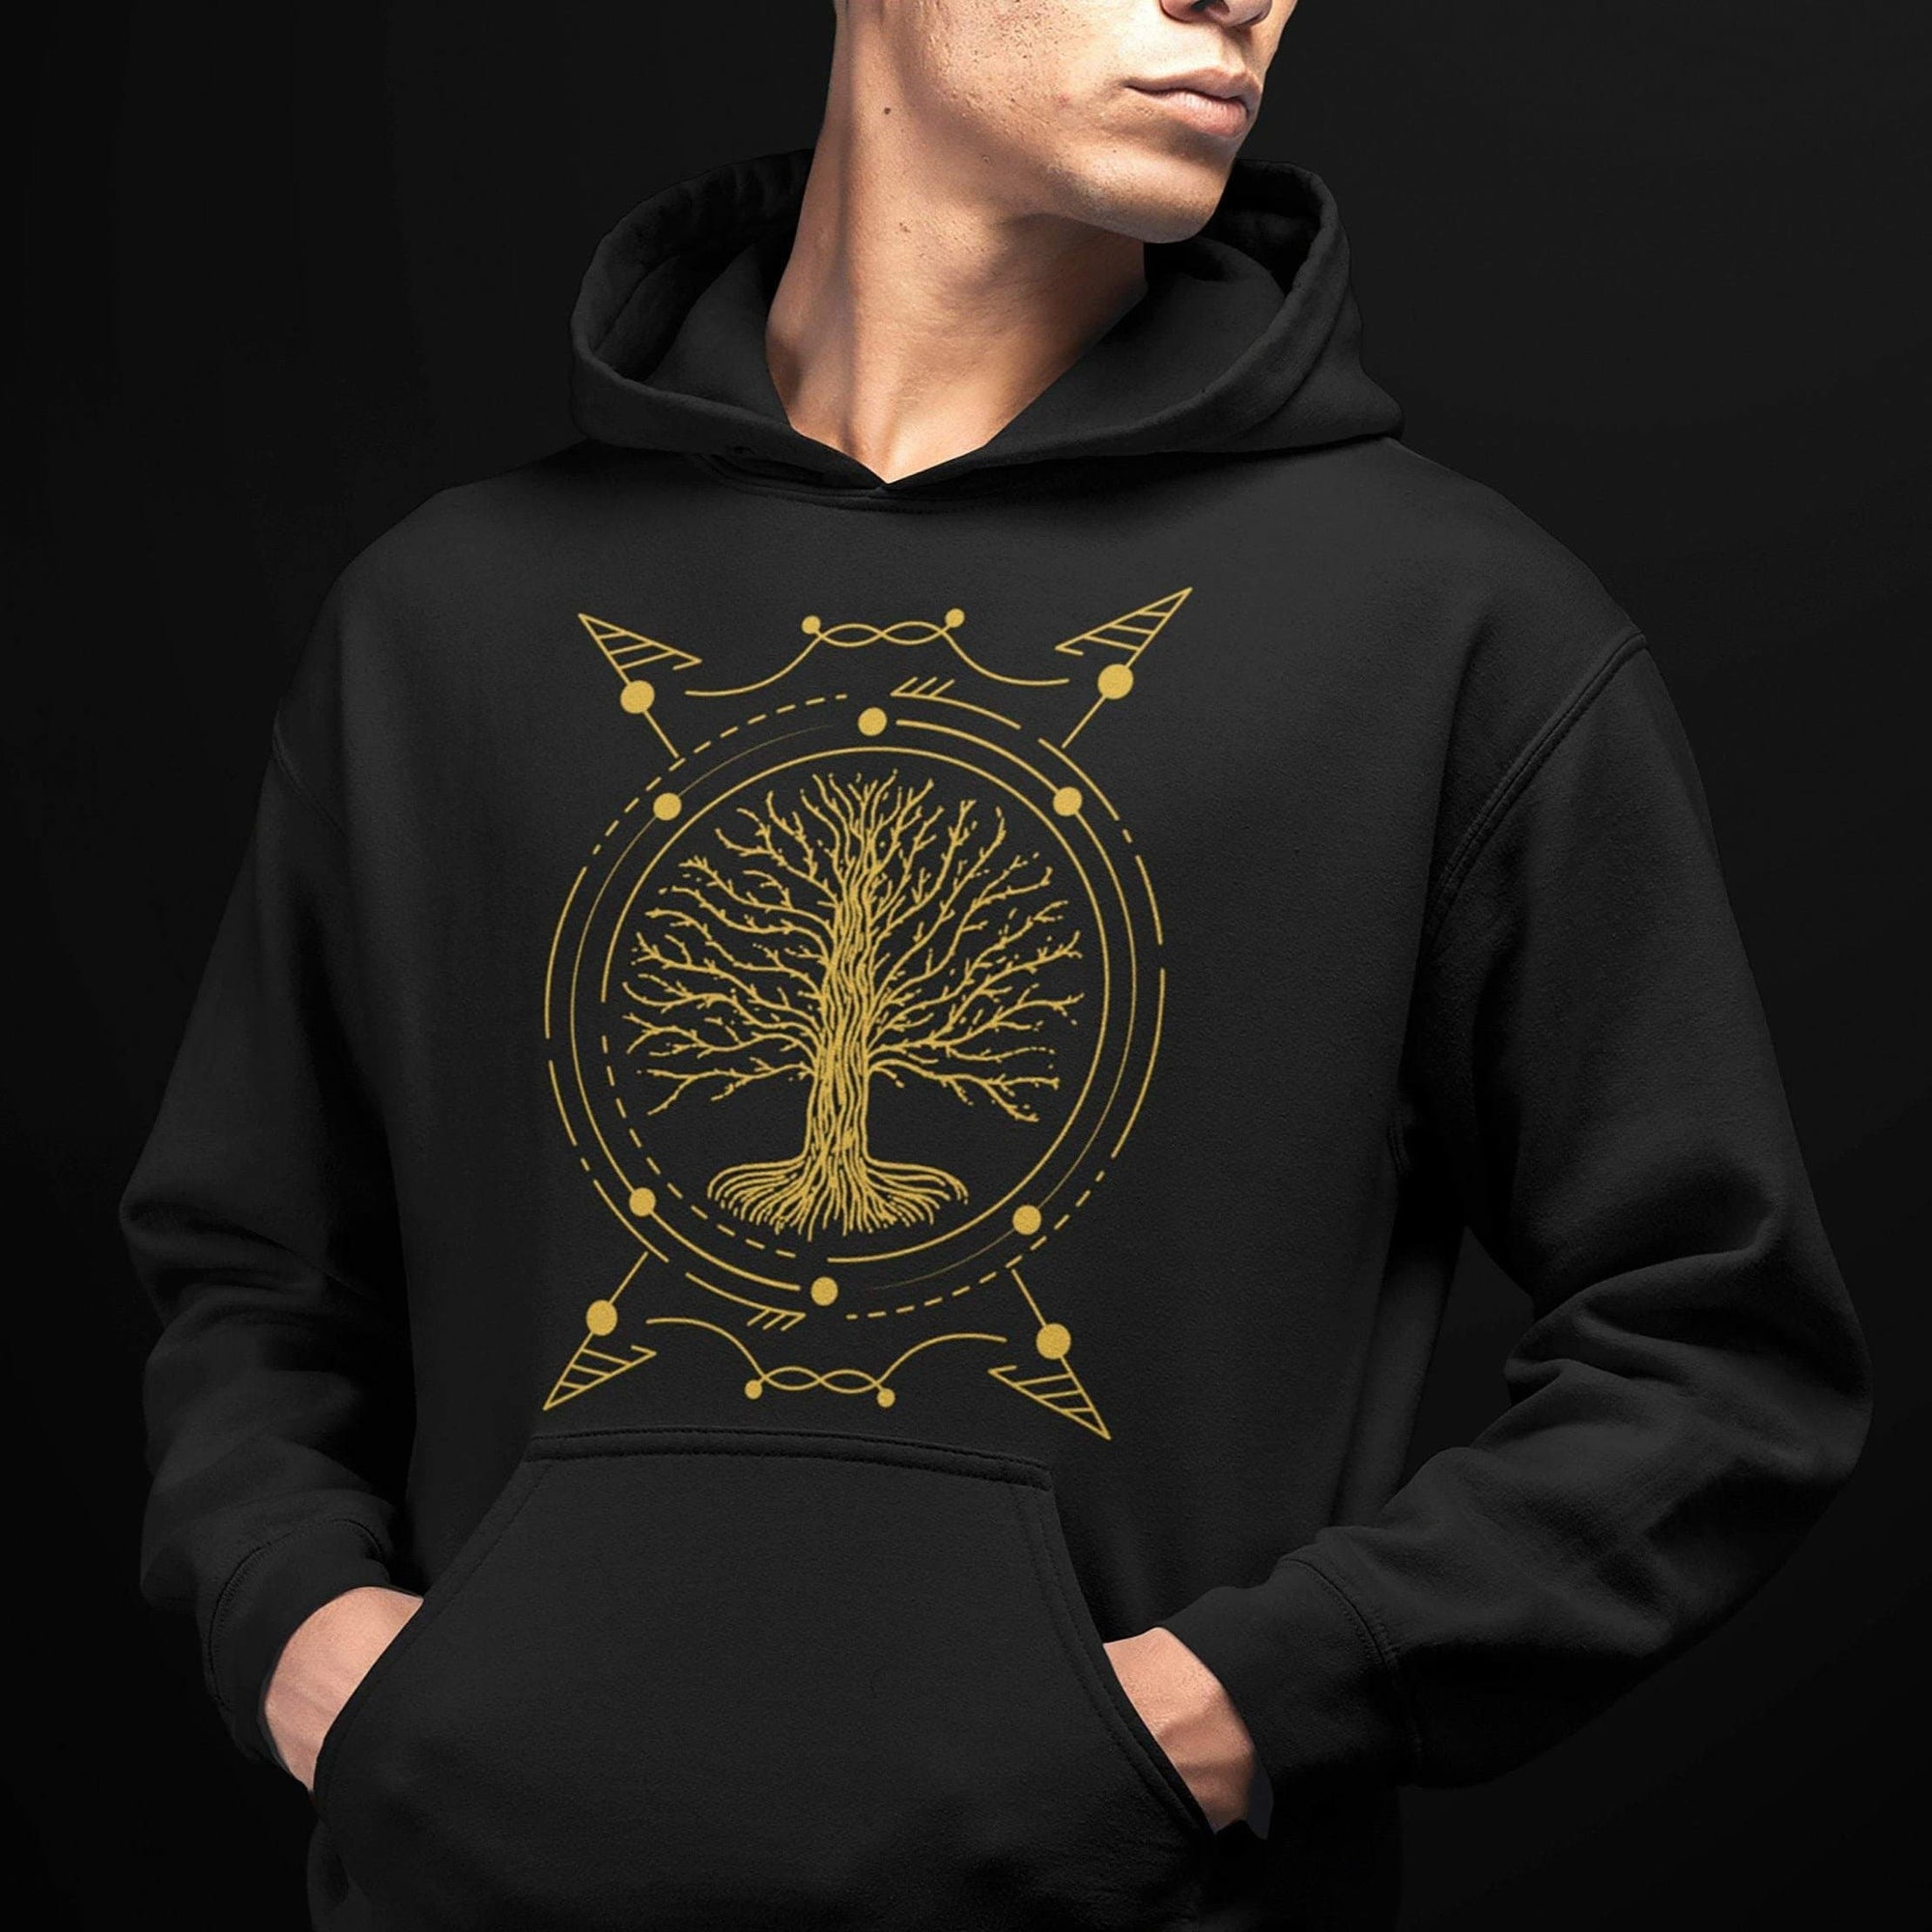 Hoodie Vikings Yggdrasil - The Tree of Life Unisex Hoodie Ancient Treasures Ancientreasures Viking Odin Thor Mjolnir Celtic Ancient Egypt Norse Norse Mythology